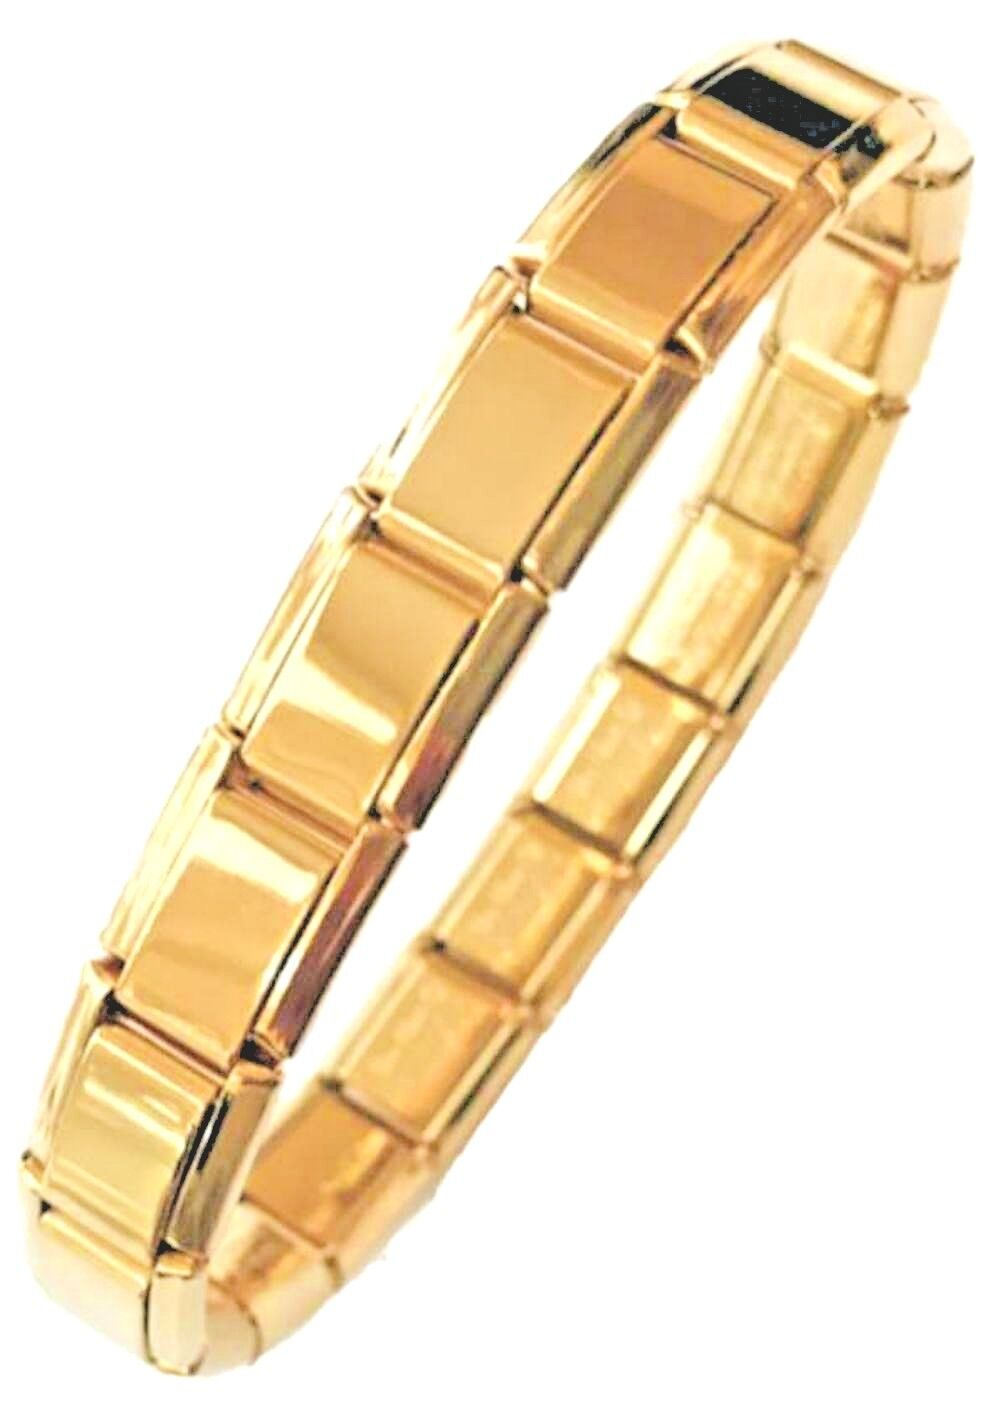 9e7a3ac1bf115 Details about 18K GOLD - LA CIMA Italian Charm 18 LINK STARTER BASE  BRACELET - Fits Nomination